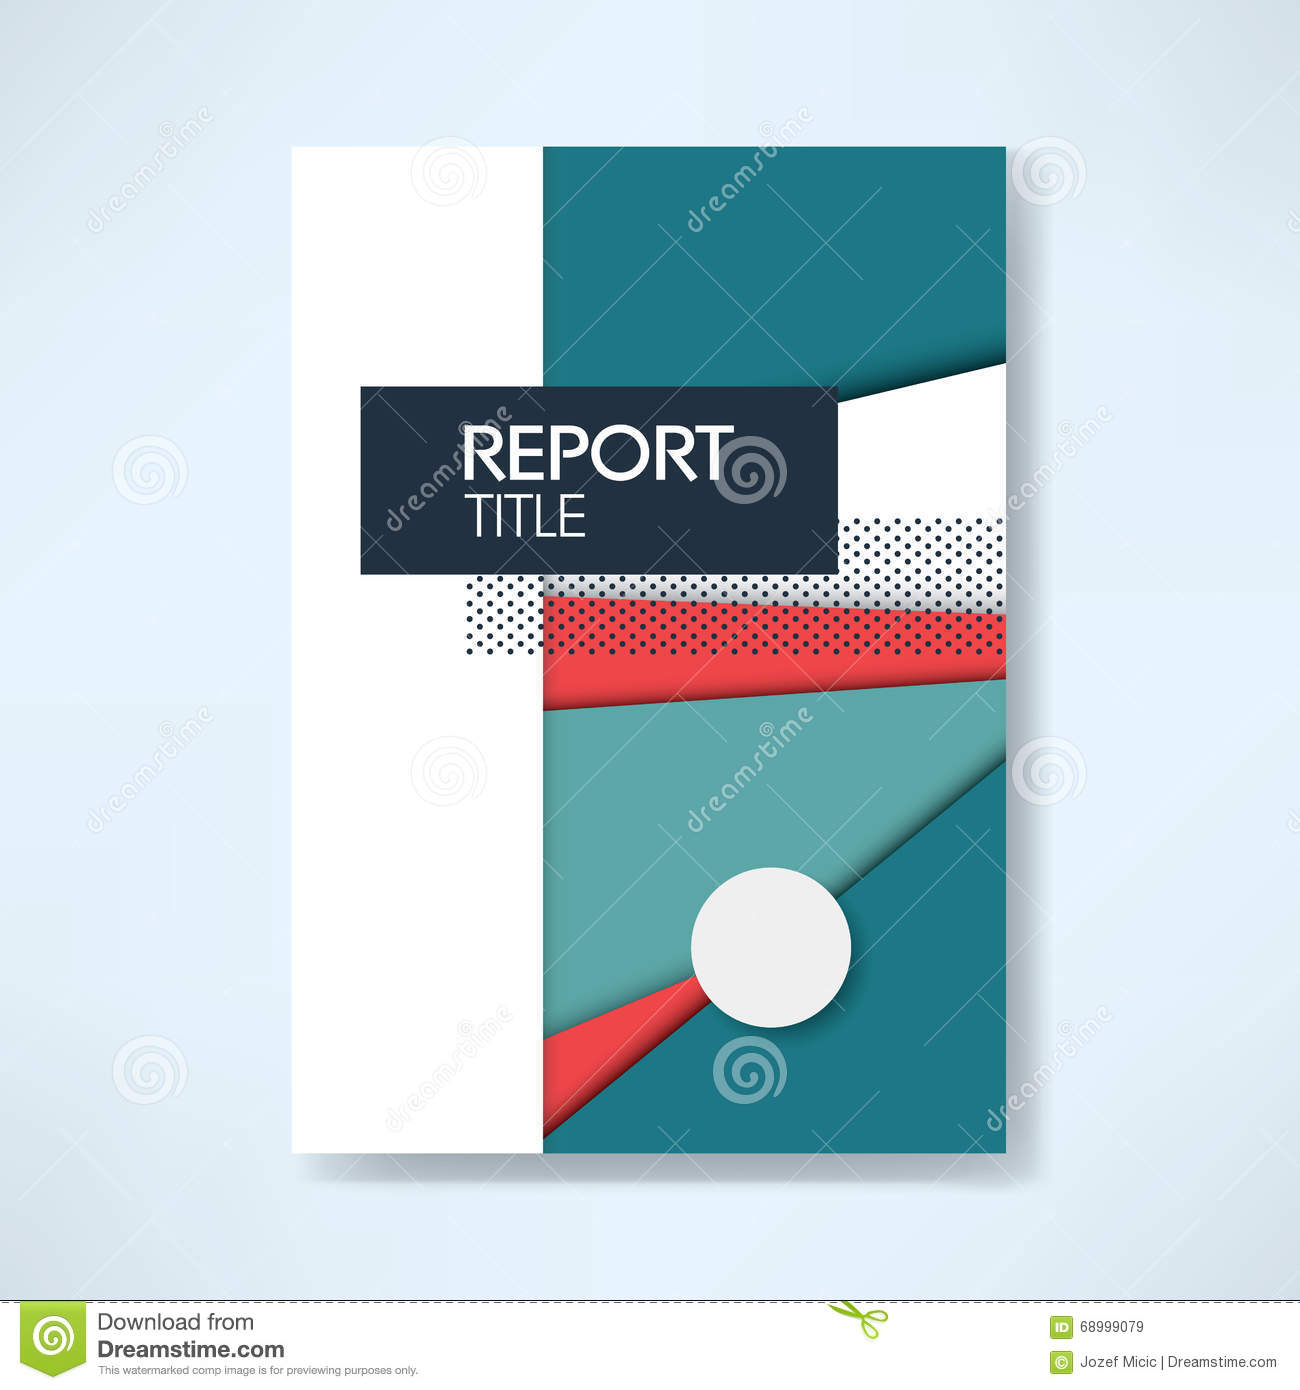 Annual Report Cover Template On Material Design Style Vector – Free Report Cover Templates